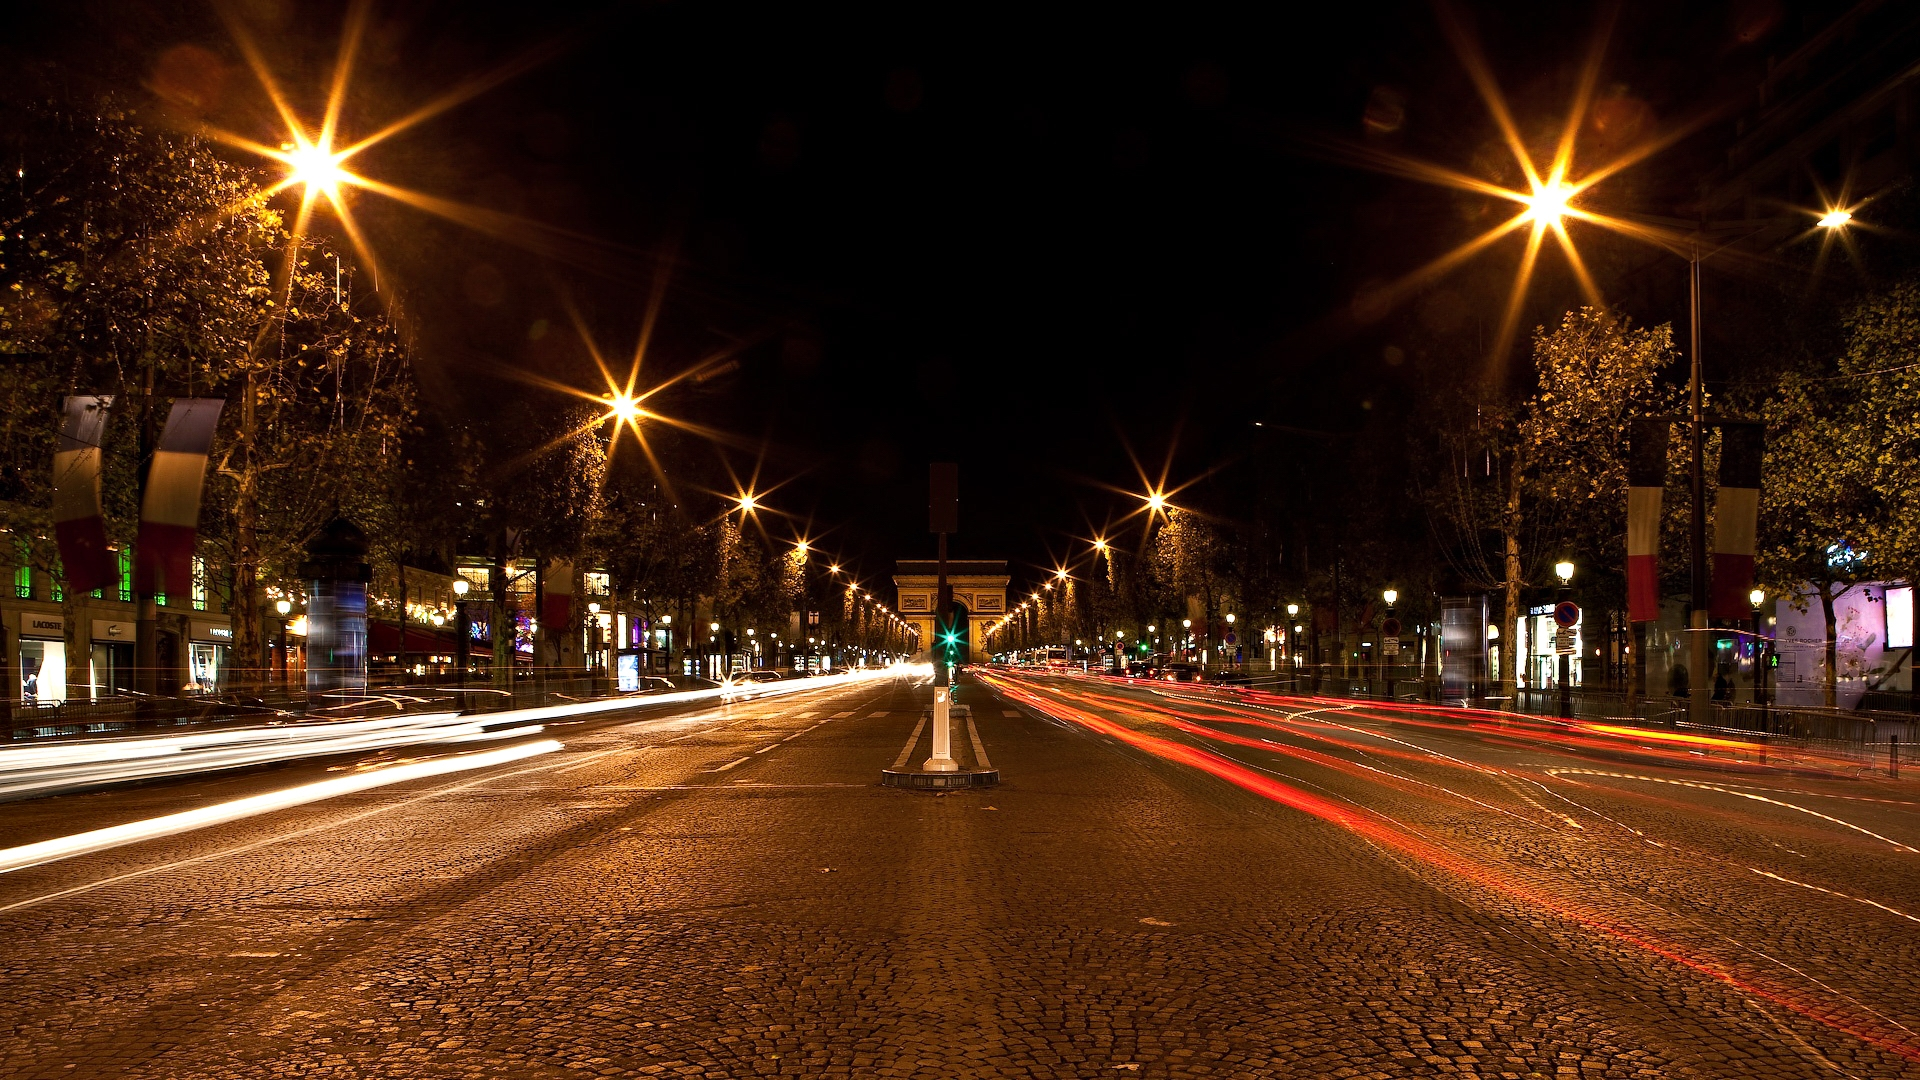 Download Wallpaper 1920x1080 Germany Street Gates Night City